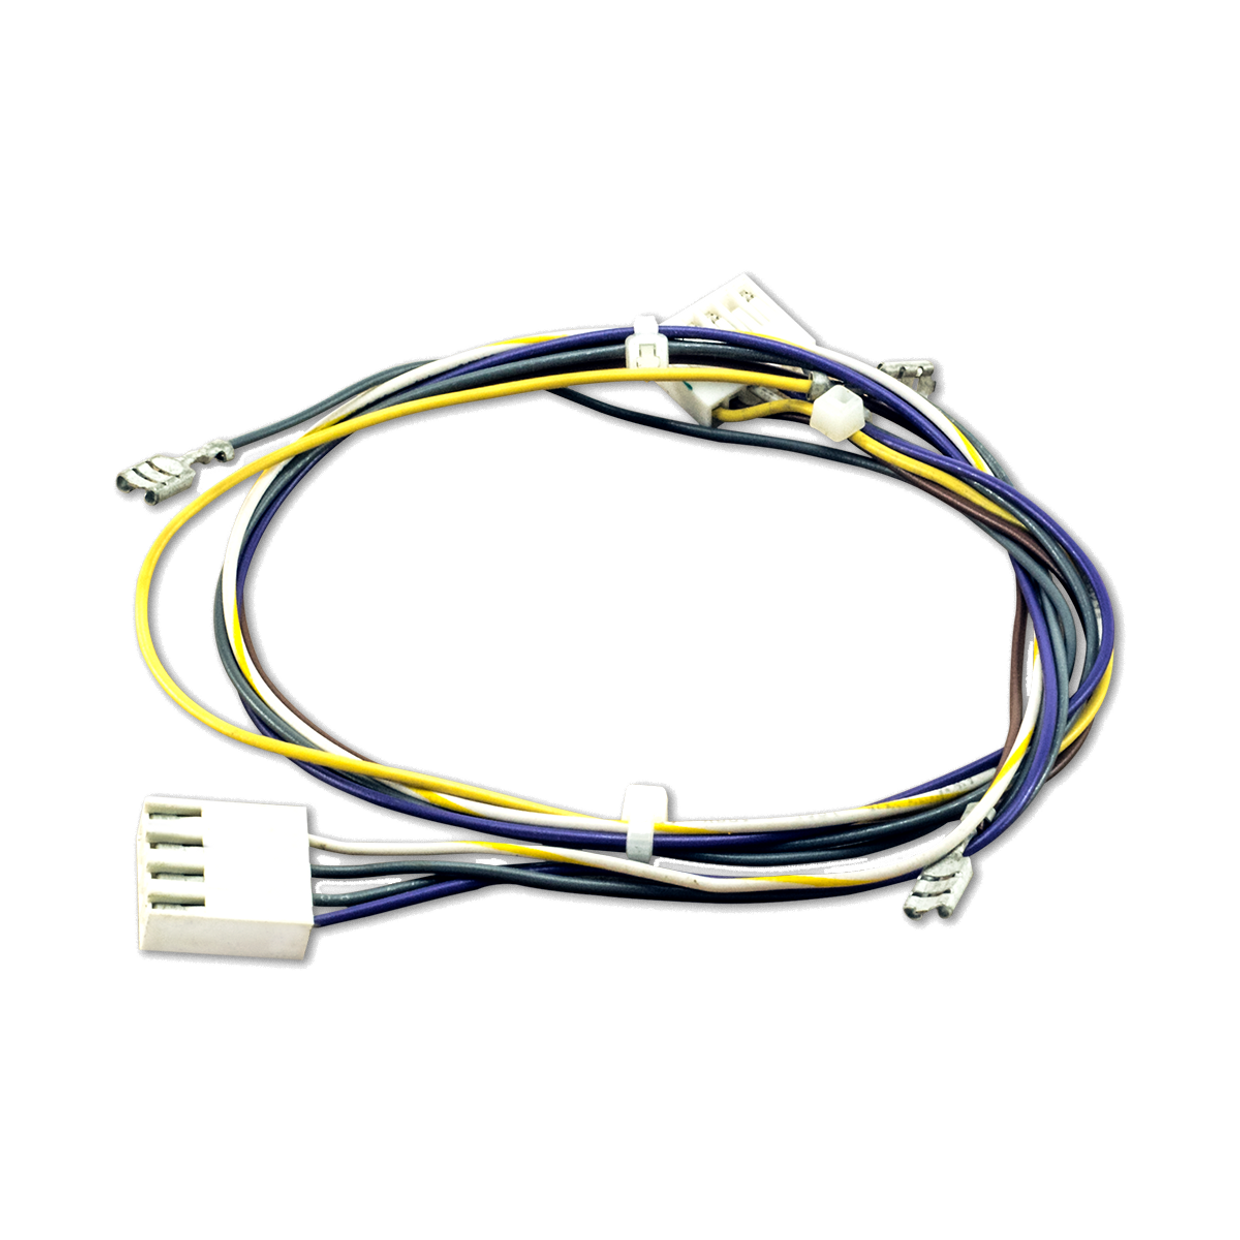 041c5548 Wire Harness Kit Low Voltage Chamberlain Ca Wiring